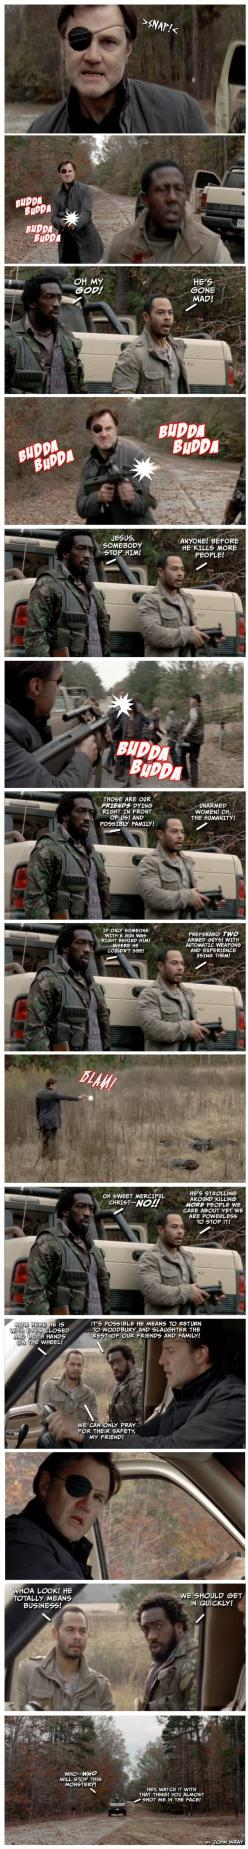 The Walking Dead season 3 episode 16 - Welcome to the Tombs gifs and memes #TickingTimeBomb - PandaWhale: Thewalkingdead, Things Norman, Stuff, The Walking Dead, Scary Things, Road Trips, So True